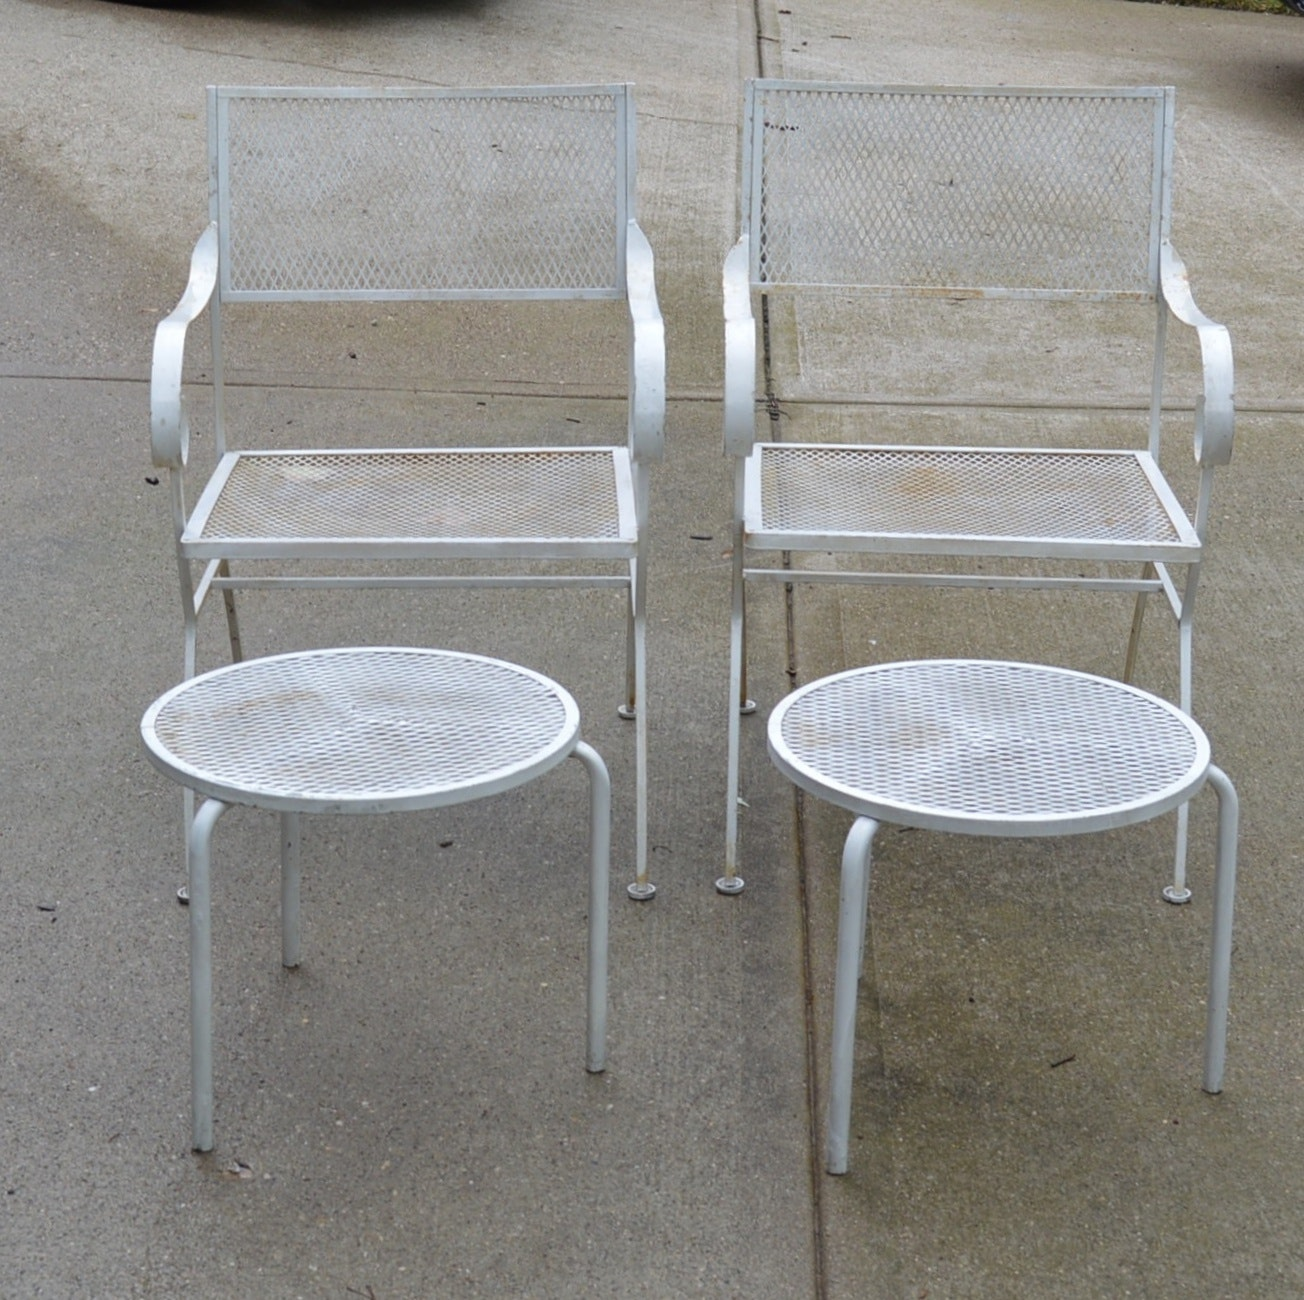 Pair of Patio Chairs with Tables